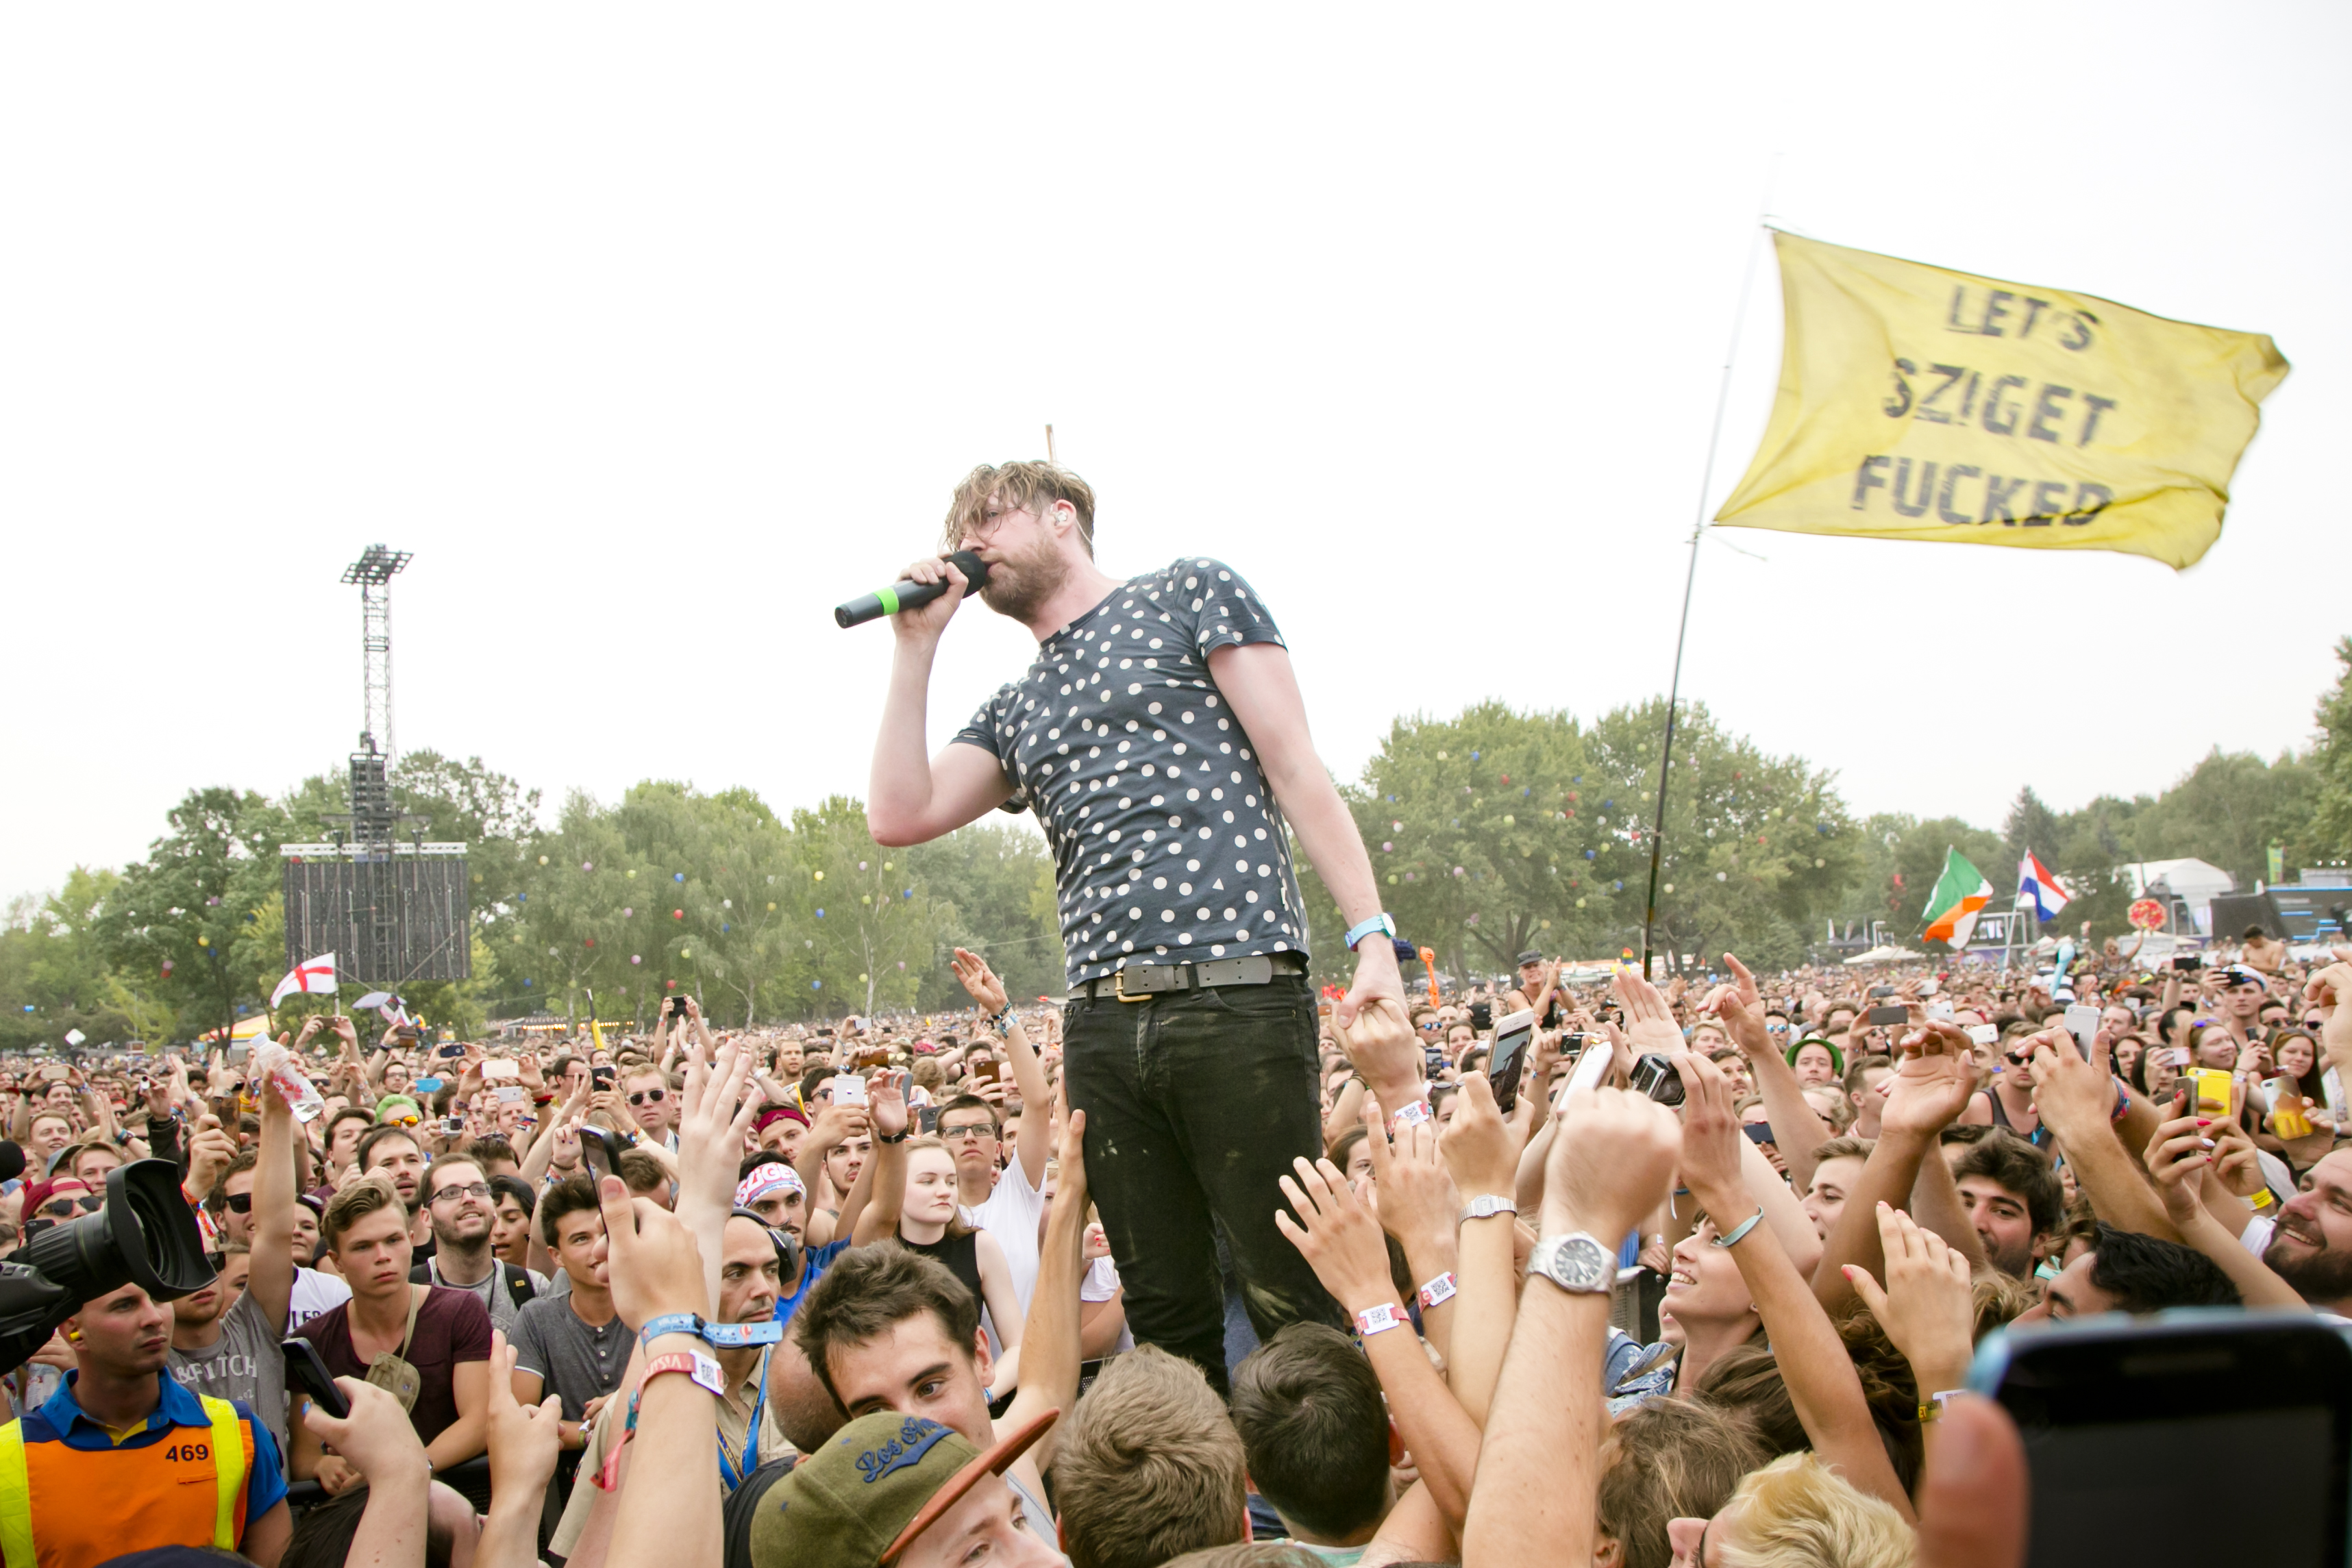 Kaiser Chiefs at Sziget Festival, Budapest, Hungary - 15 August 2016